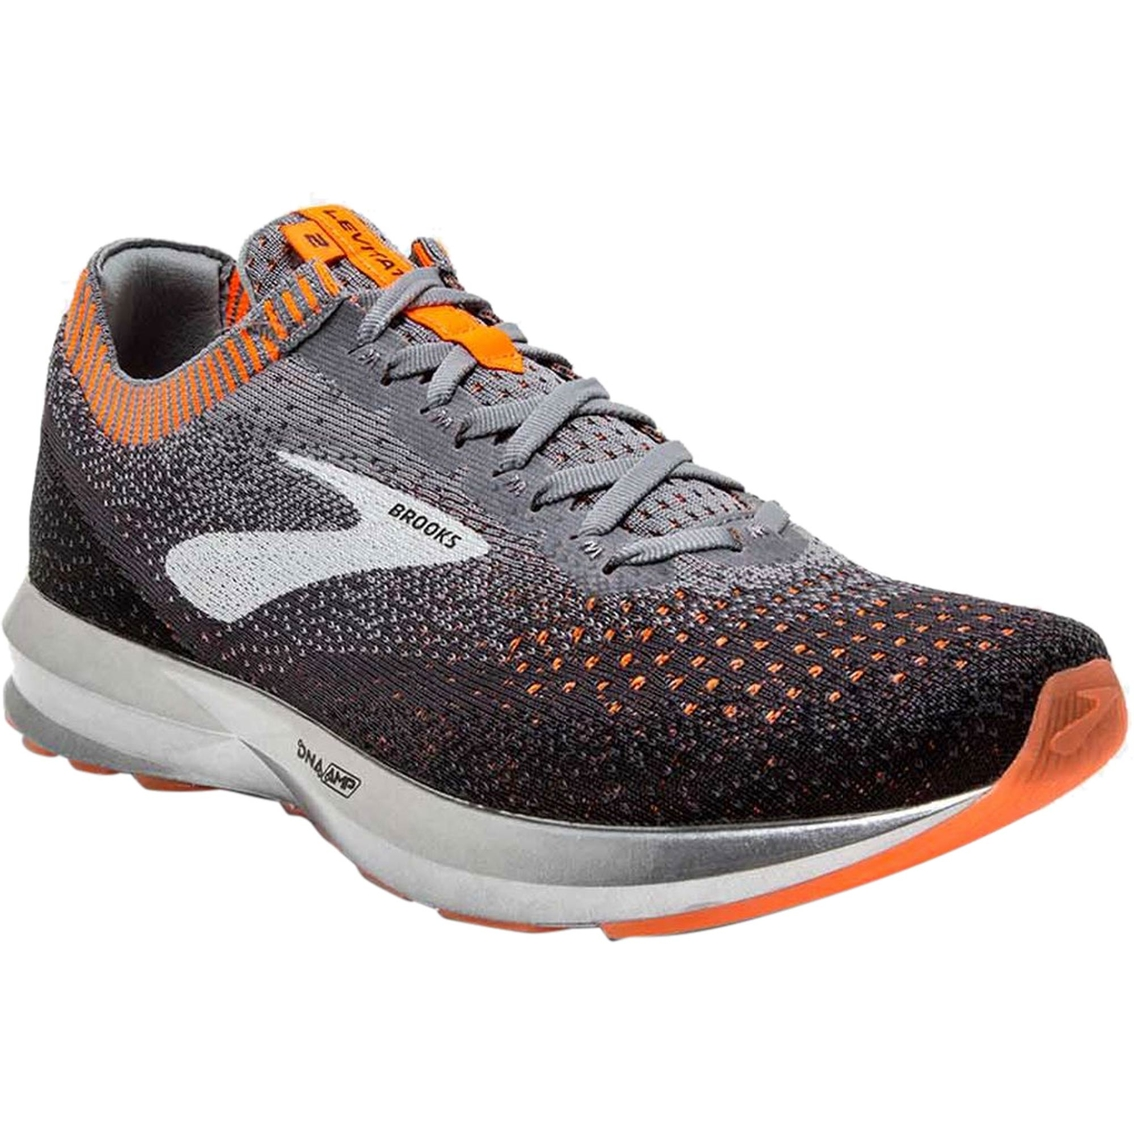 5131fdabeb7b4 Brooks Men s Levitate 2 Running Shoes